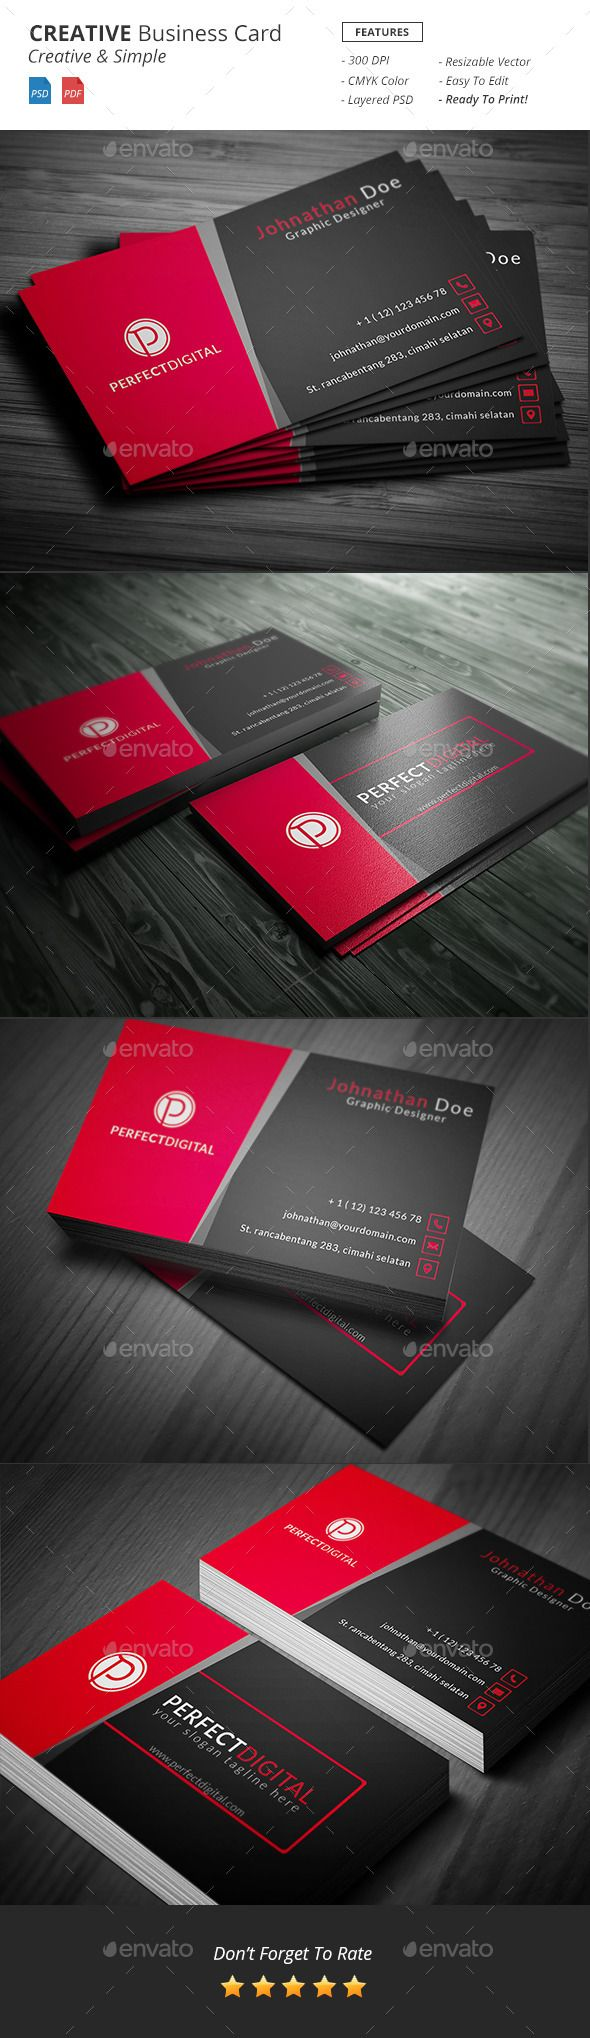 Creative - Business Card Template